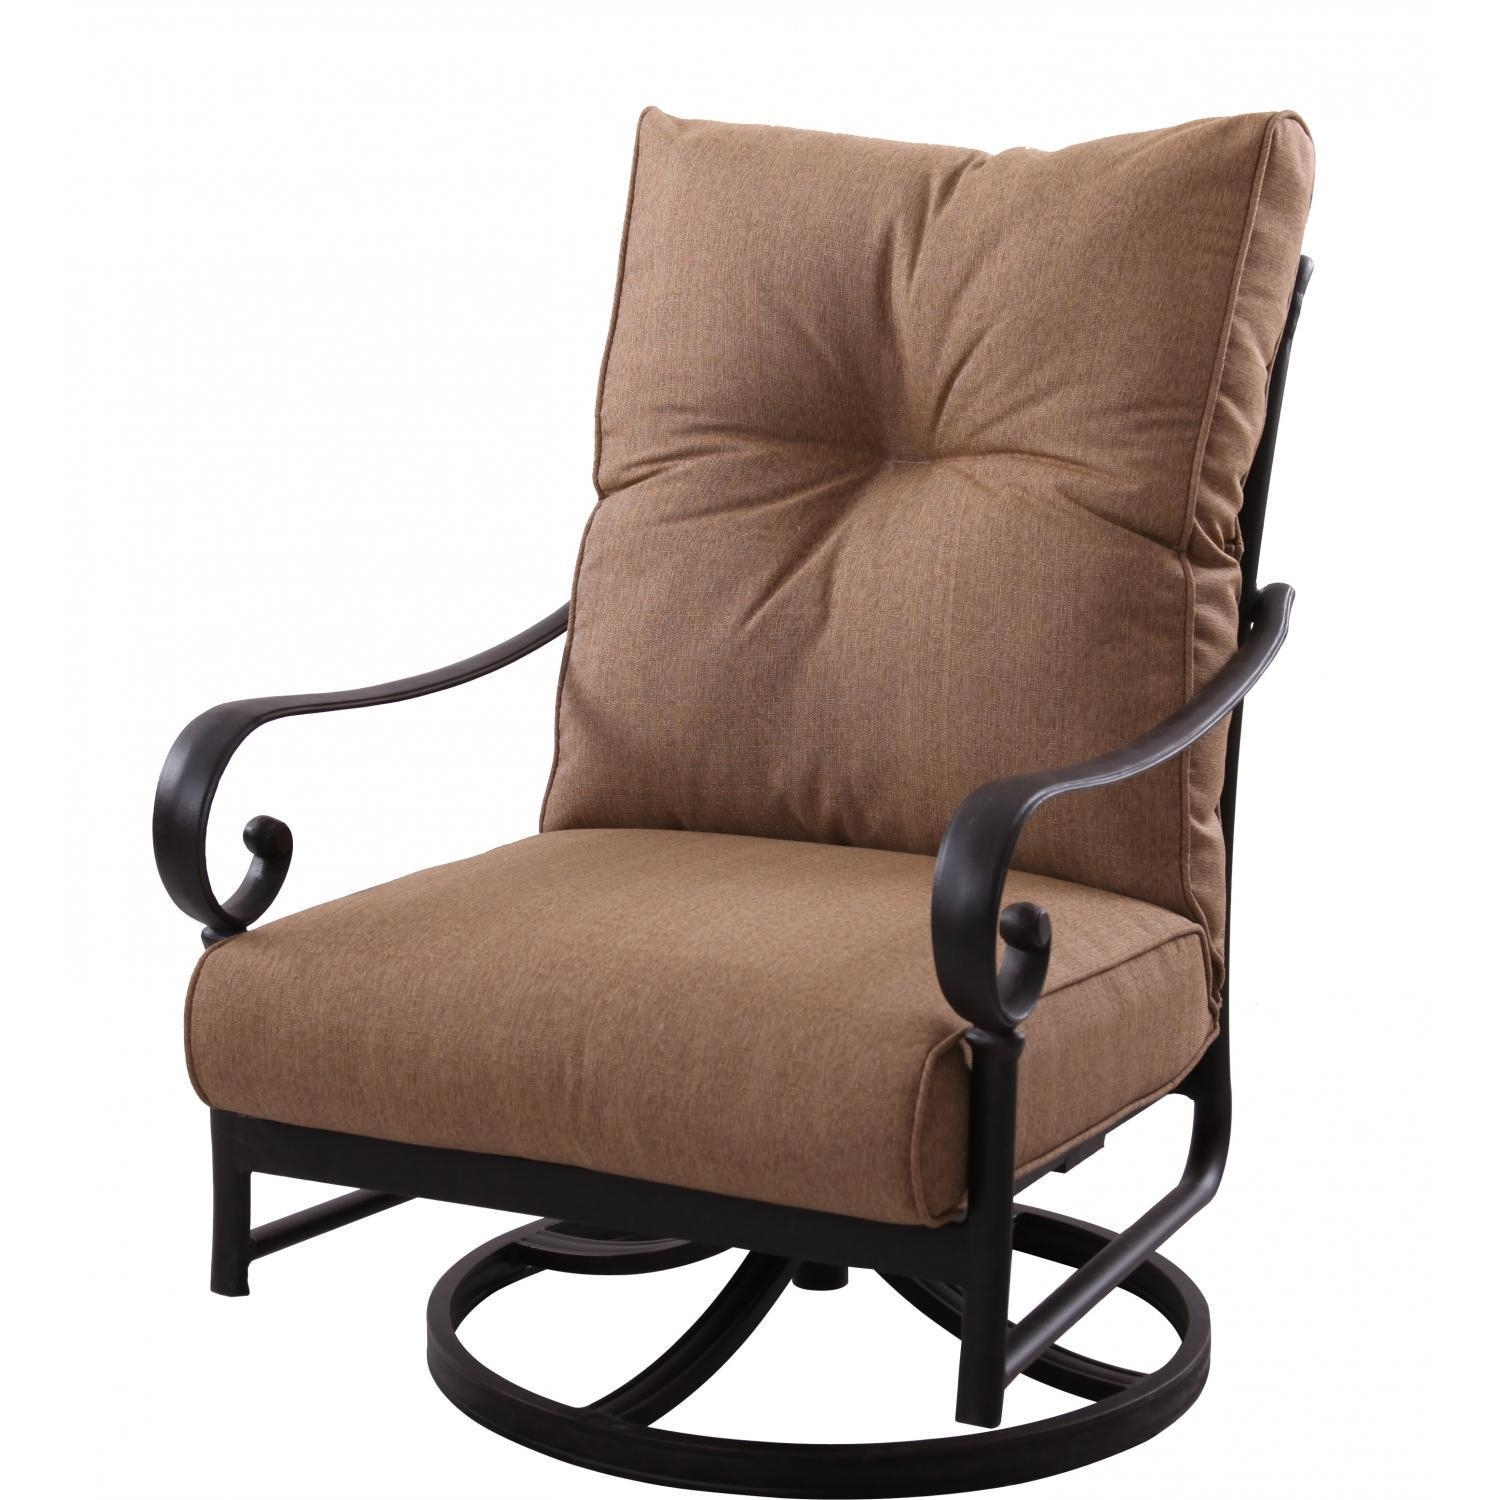 Inspiration about Darlee Santa Anita Cast Aluminum Patio Swivel Rocker Club Chair Inside Swivel Rocking Chairs (#6 of 15)